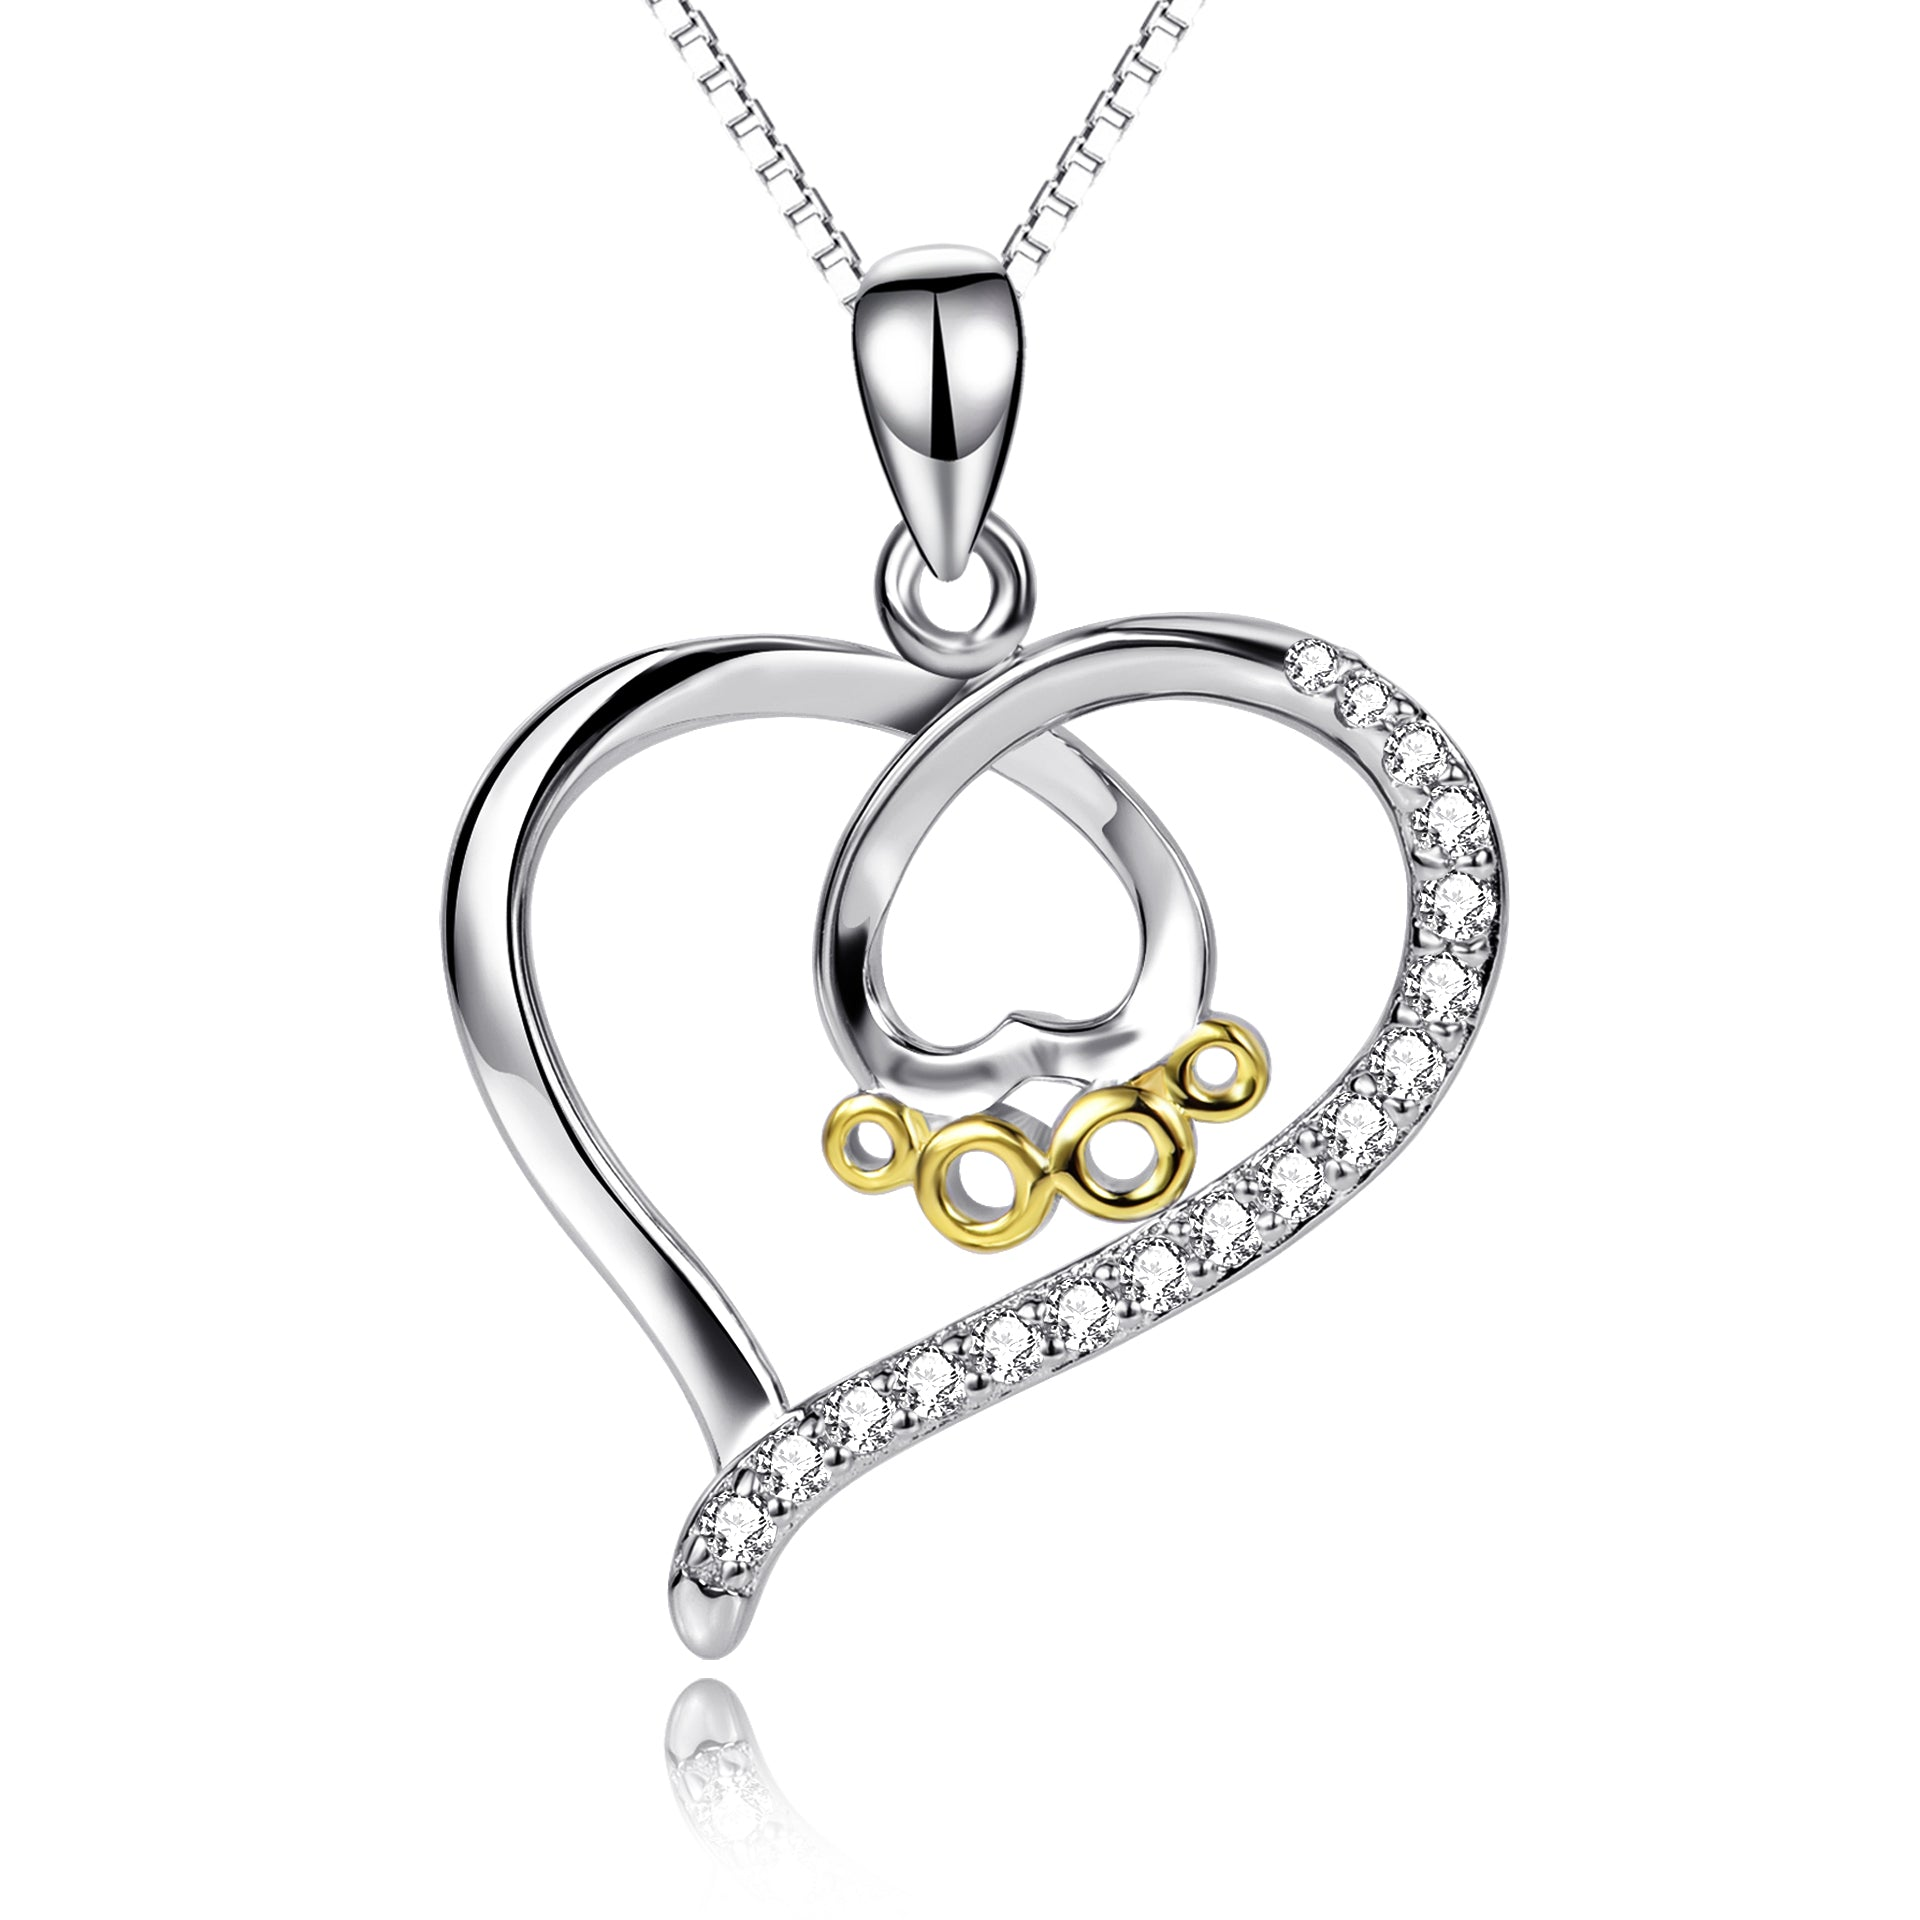 Heart Braided Heart Women's Necklace Wholesale  Chain Necklace